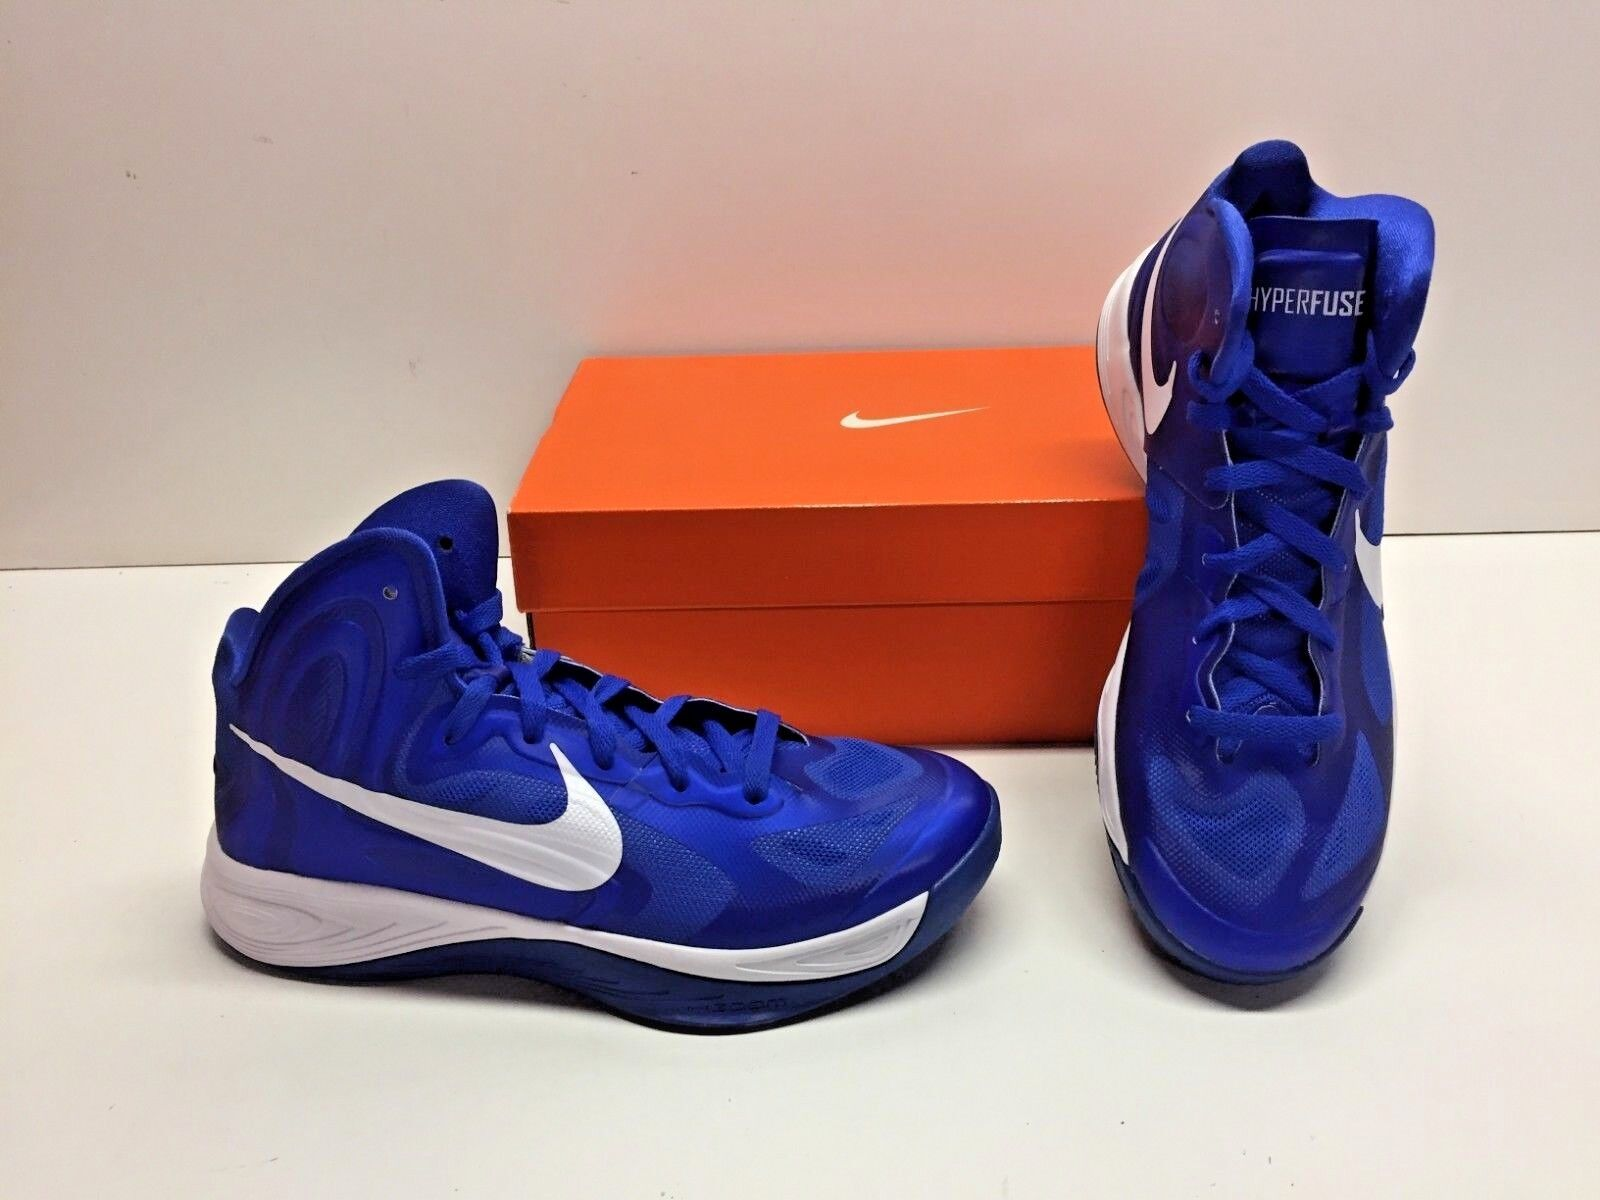 Nike Zoom Hyperfuse TB Basketball bluee & White Athletic Sneakers shoes Mens 10